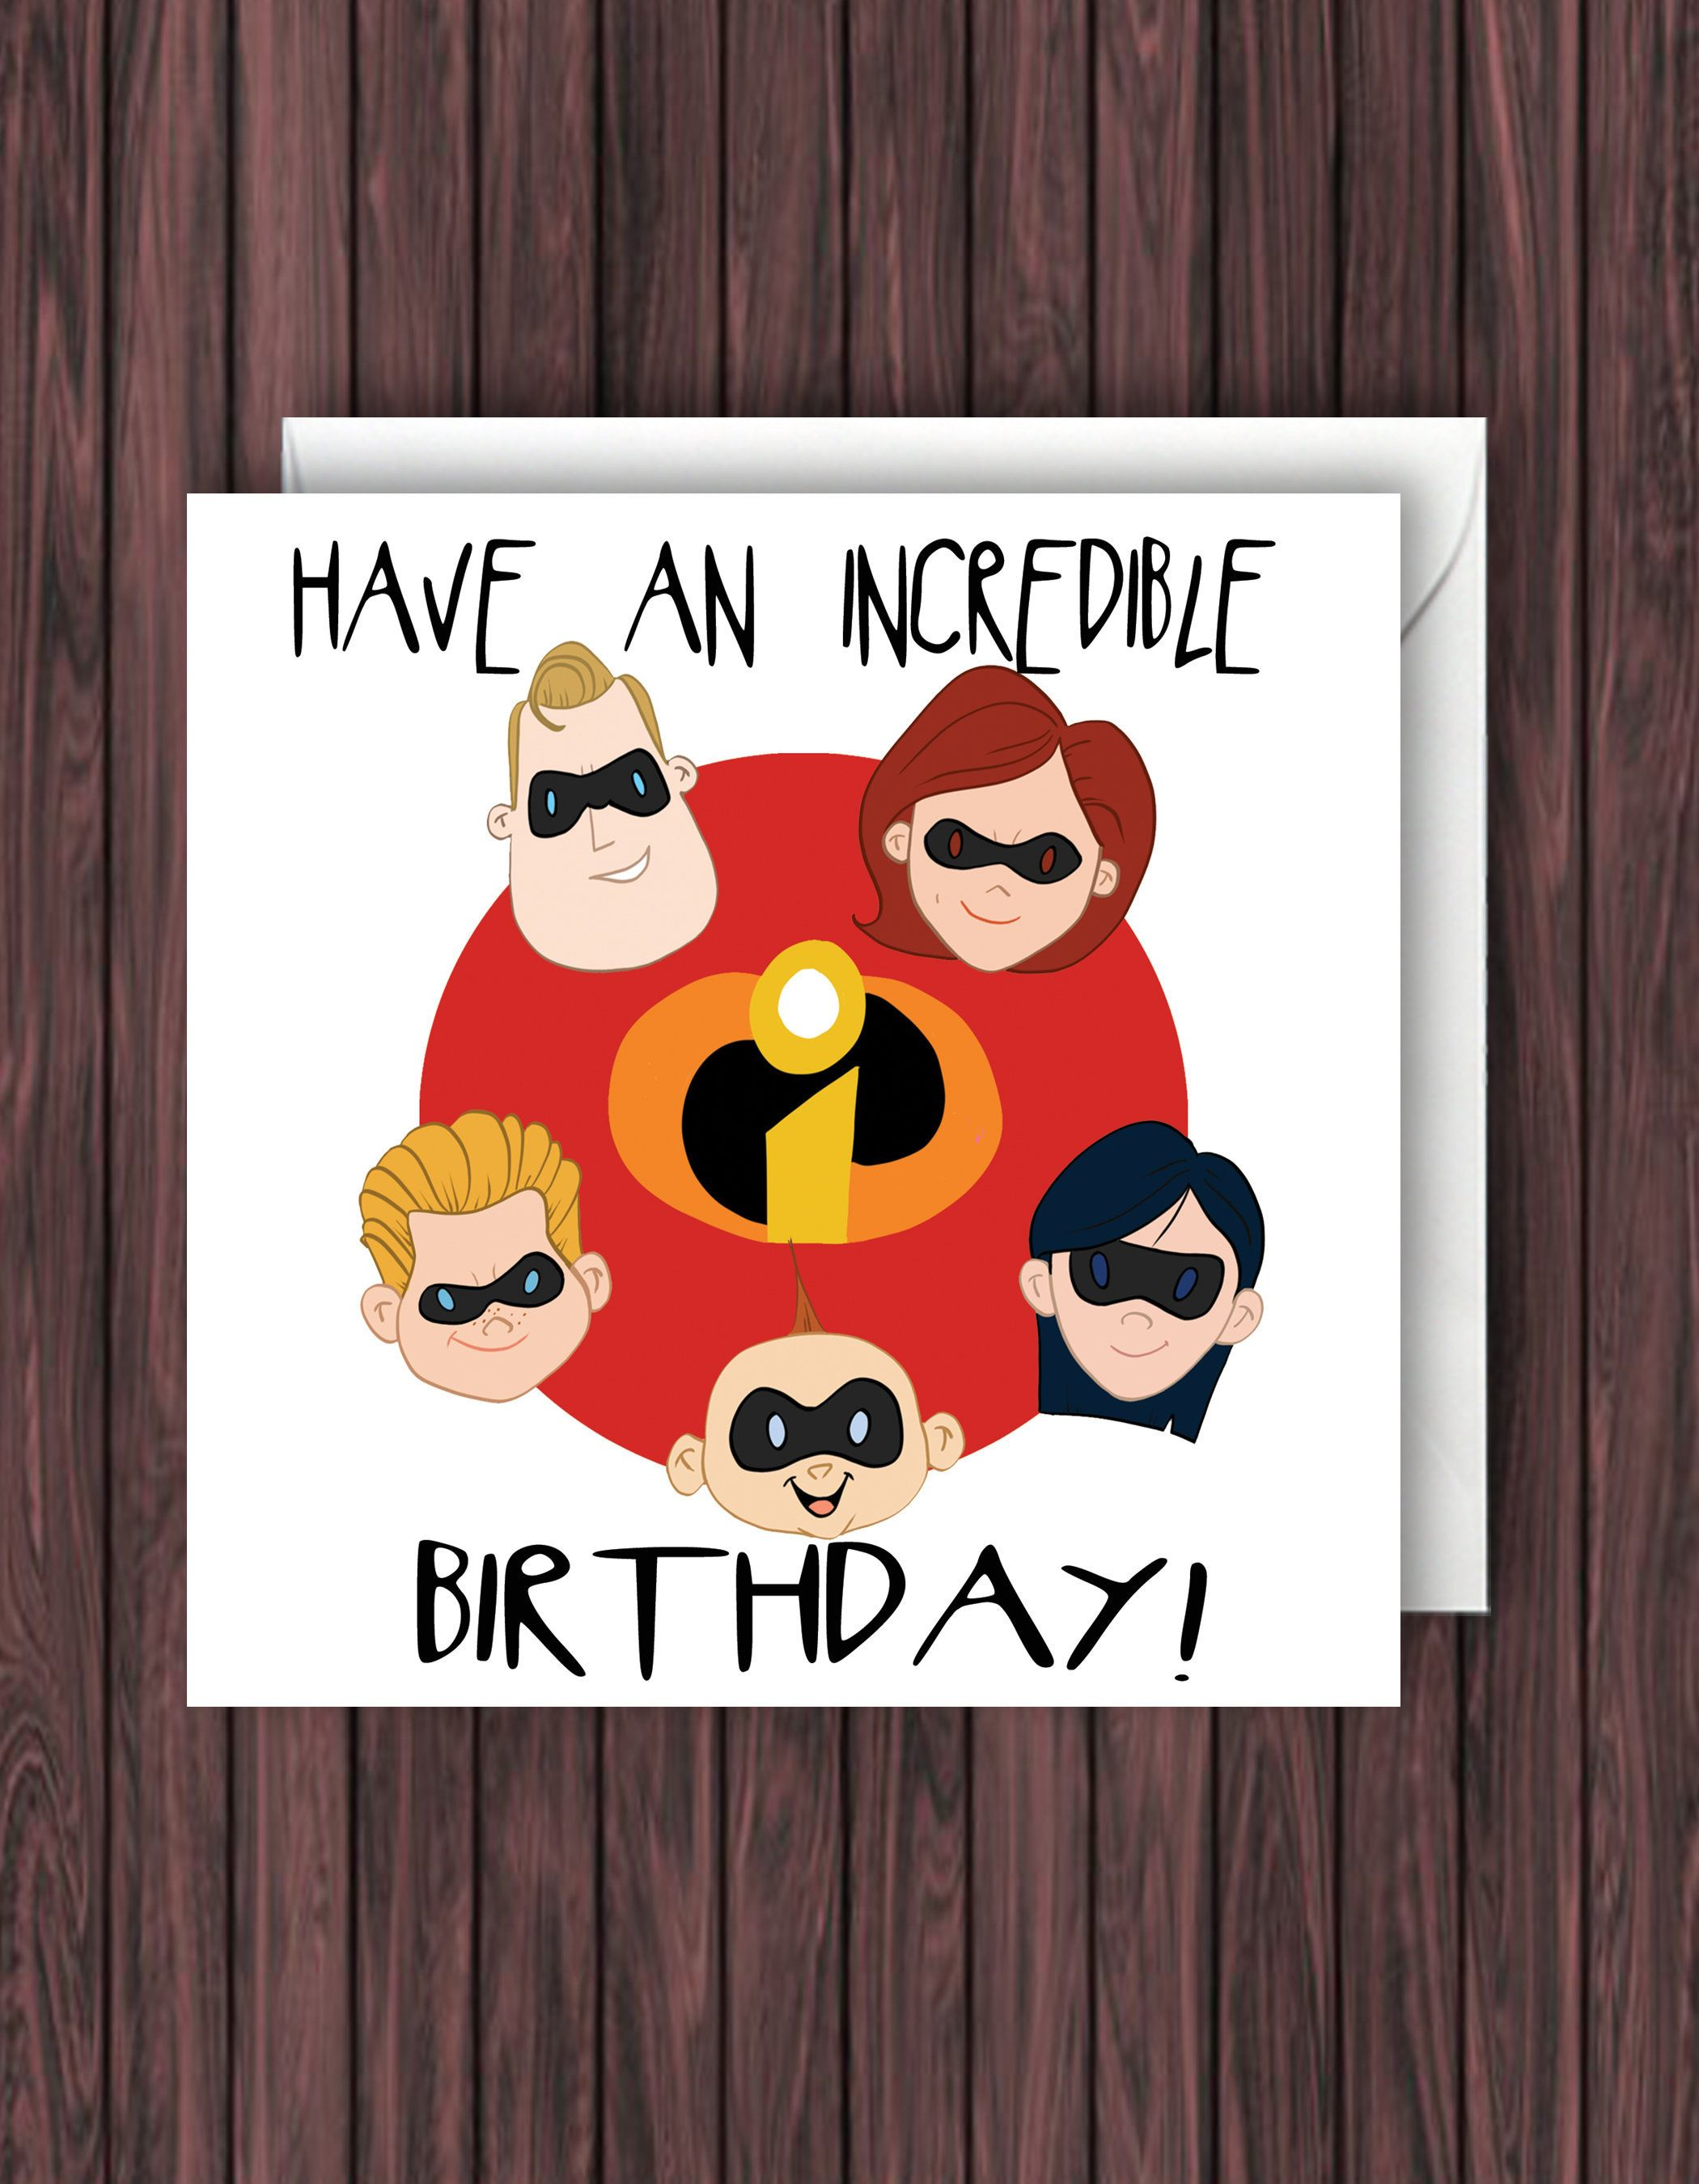 Whos Excited For Incredibles 2 Birthday Wishes Disney Card Gift Cards